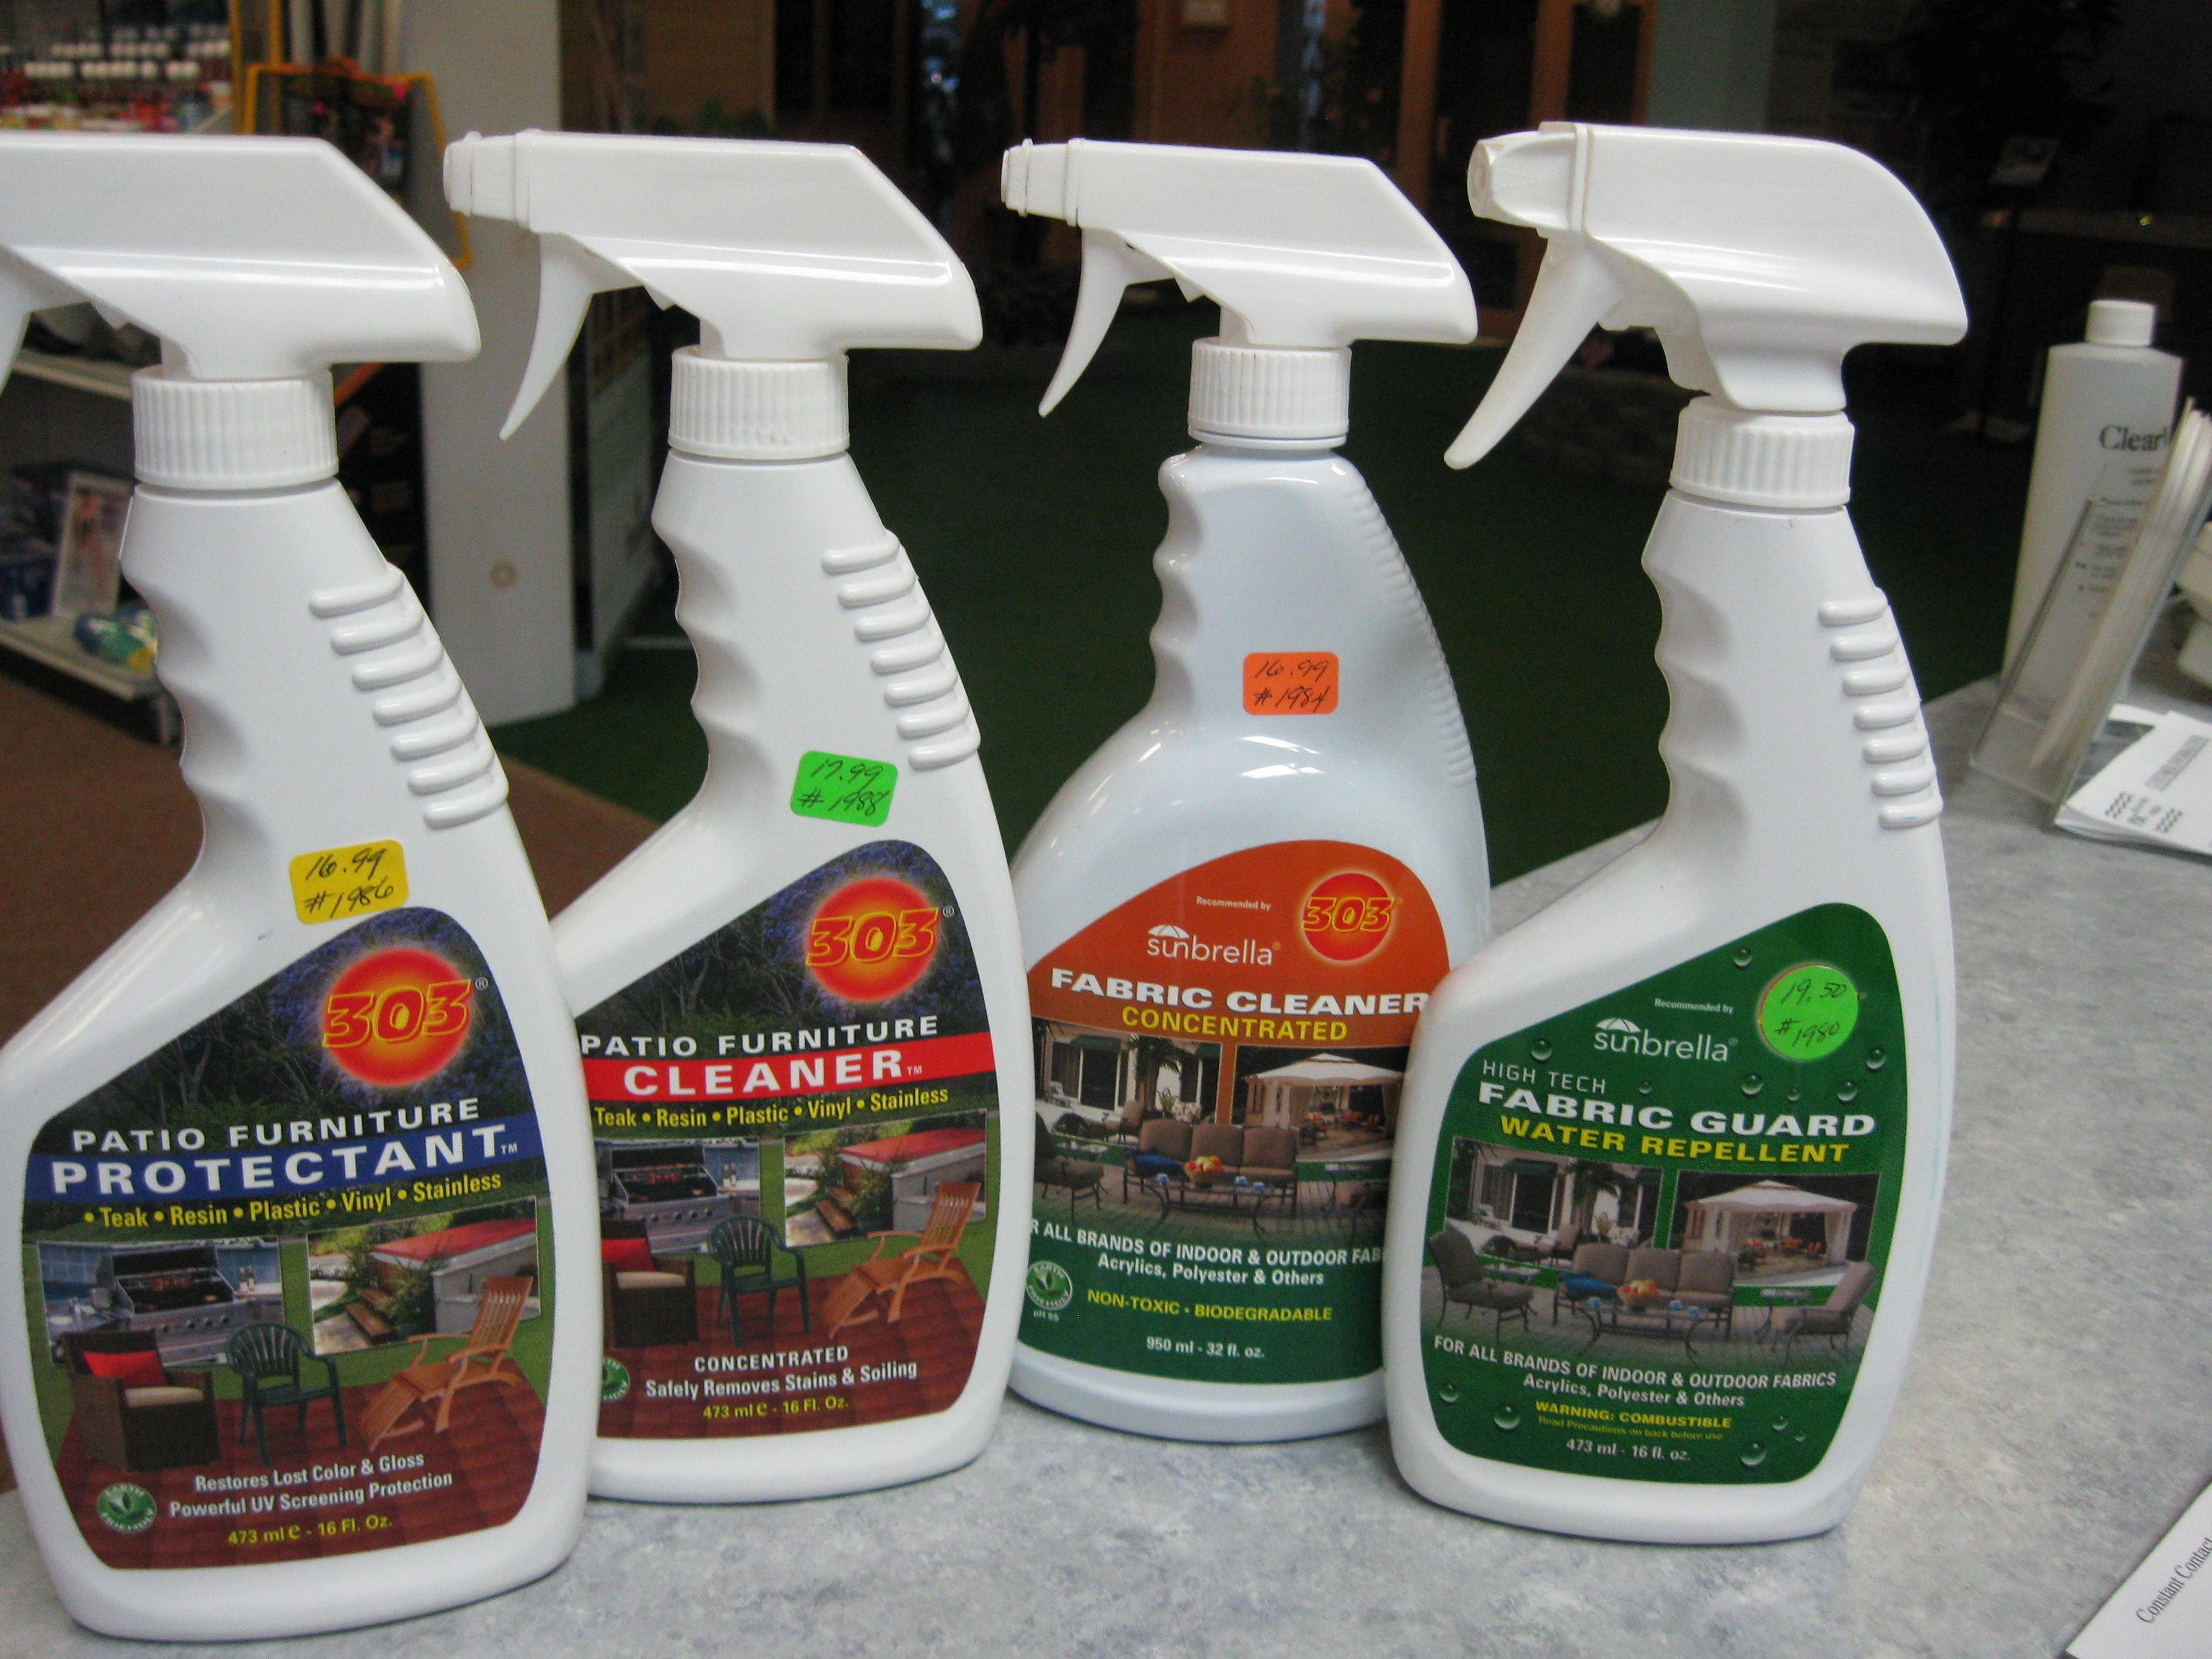 Try our New Biodegradable Patio Furniture Cleaners to keep your